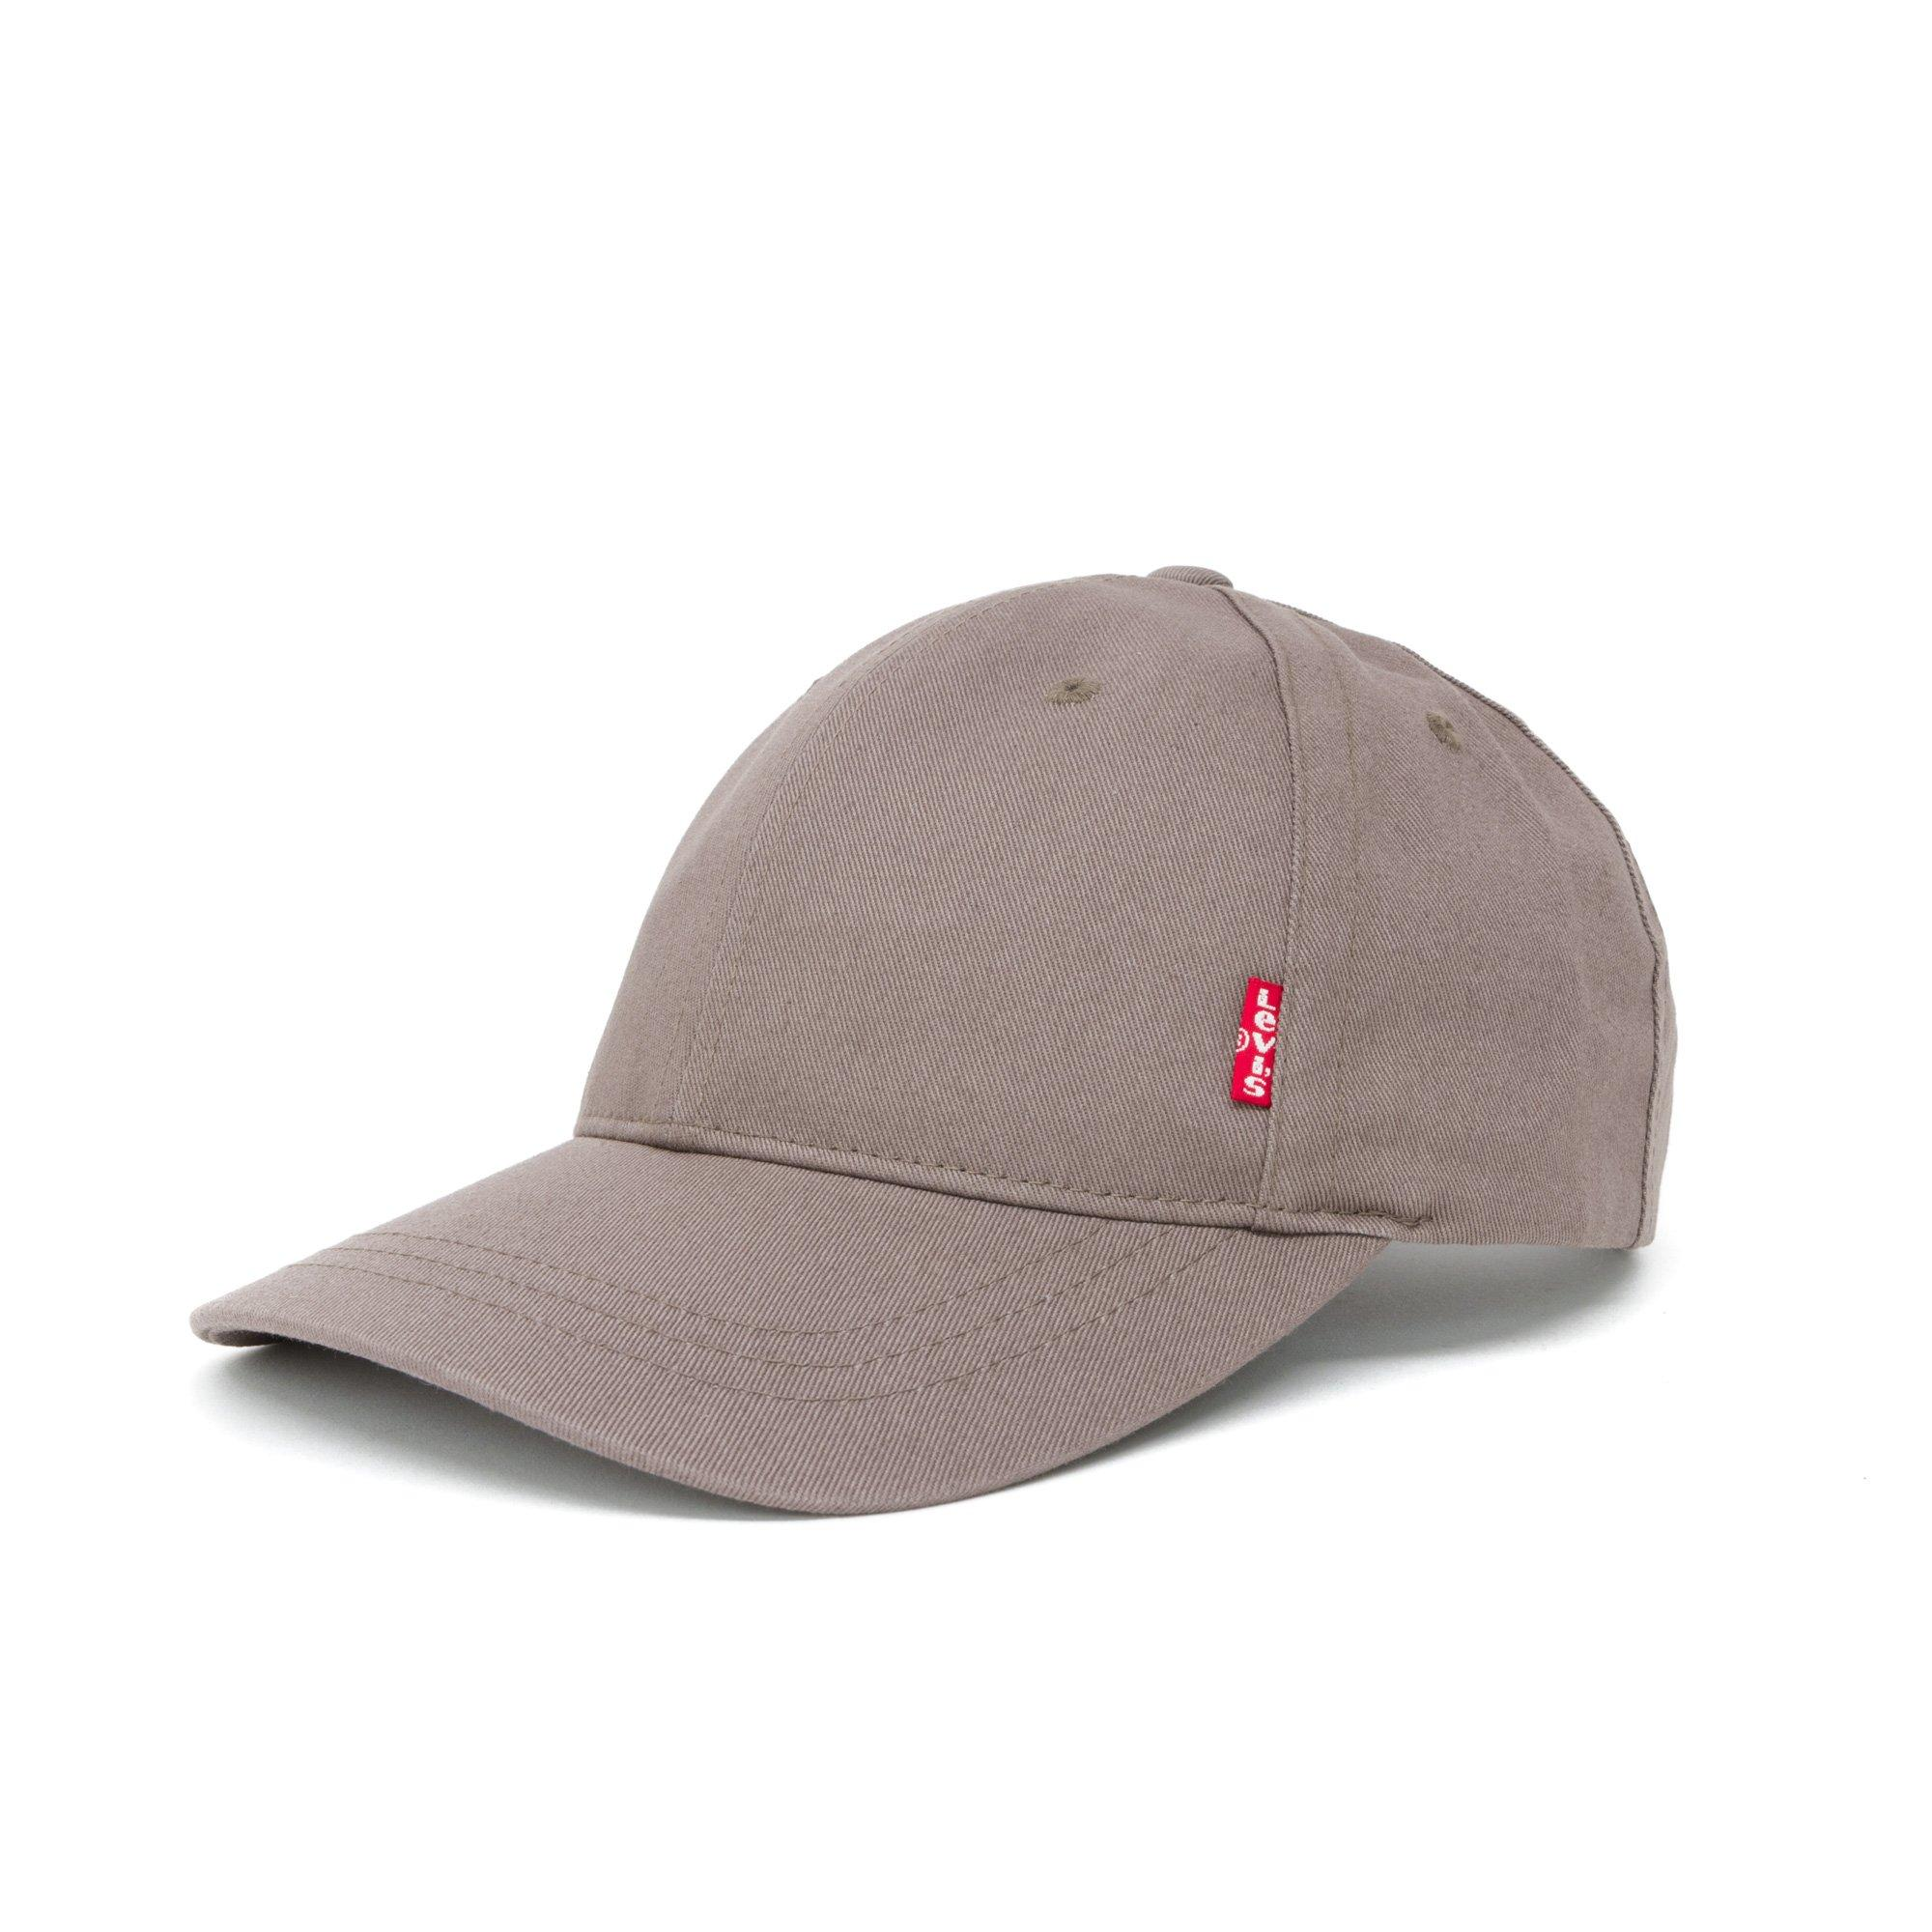 54ad8f49 Lyst - Levi's Twill Red Tab Baseball Cap in Gray for Men